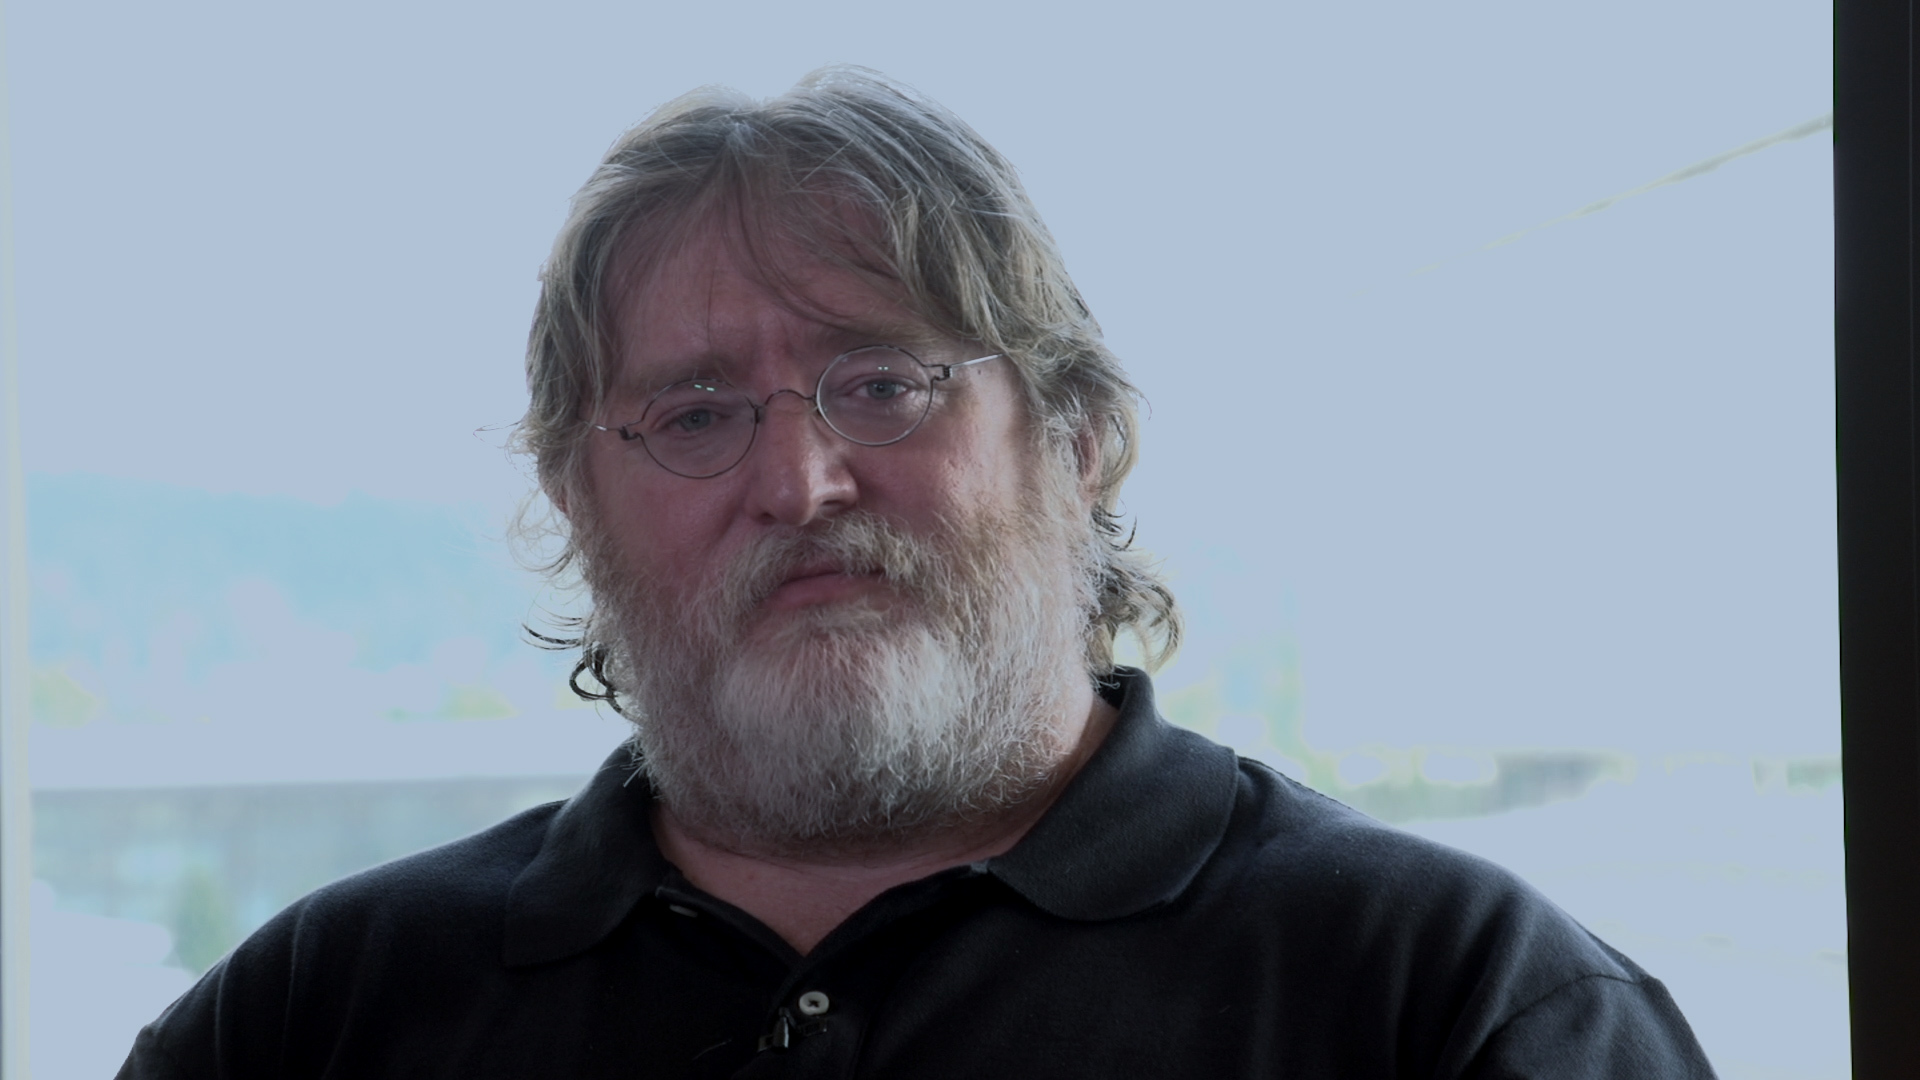 Gabe Newell Images